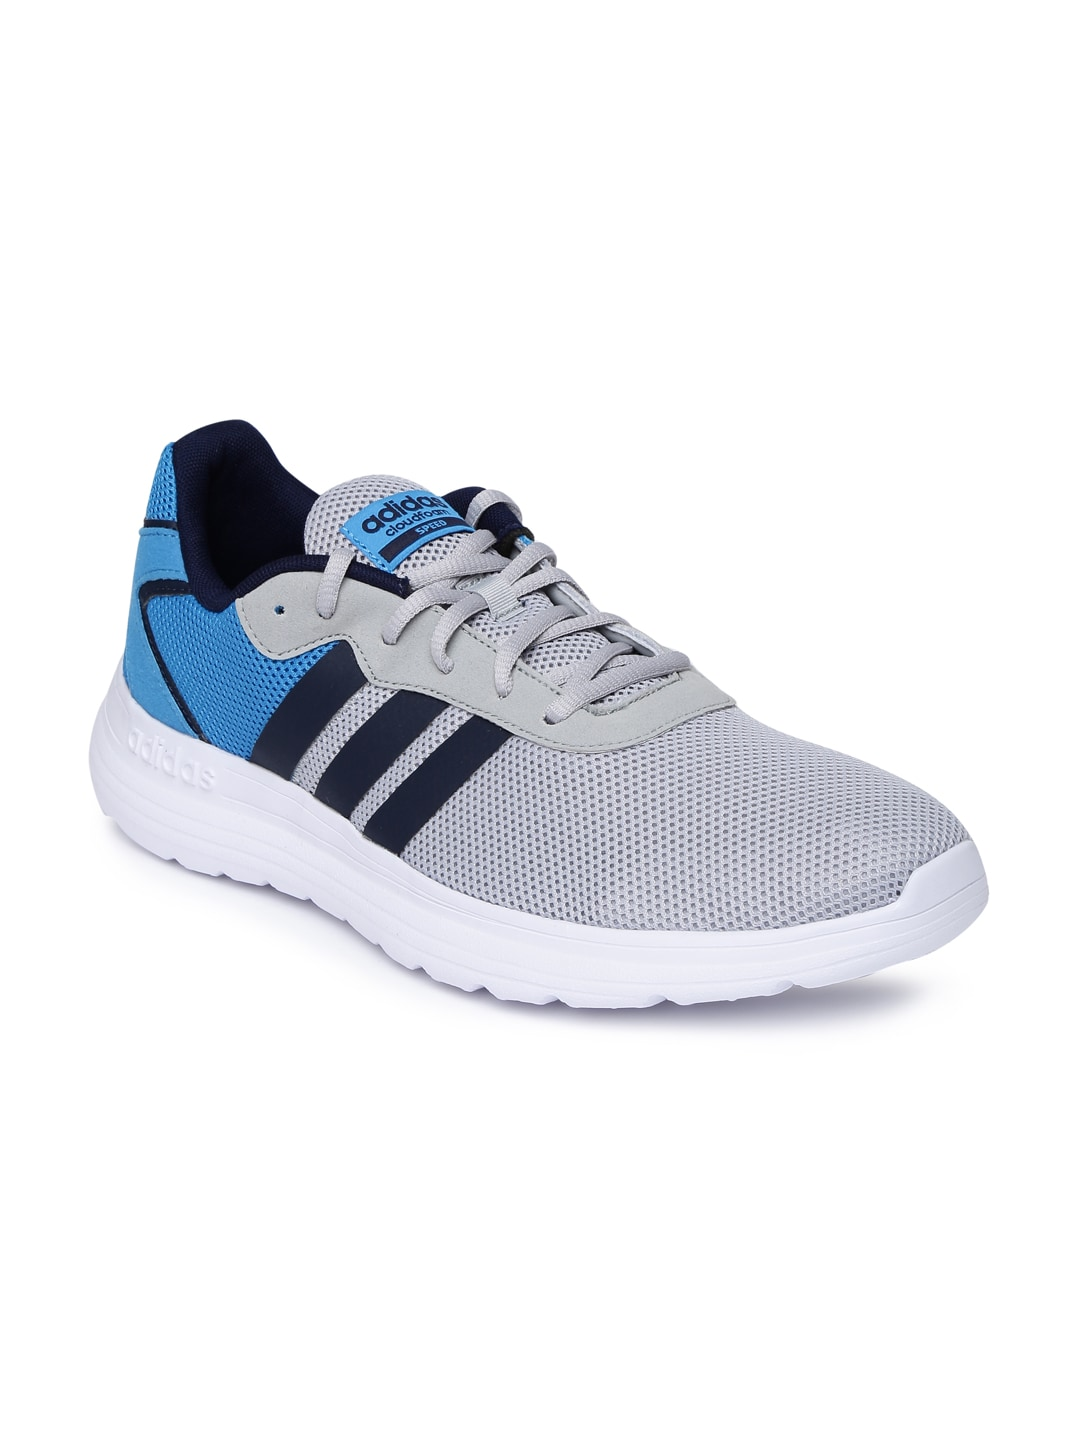 sold gt adidas casual shoes adidas factory outlet store